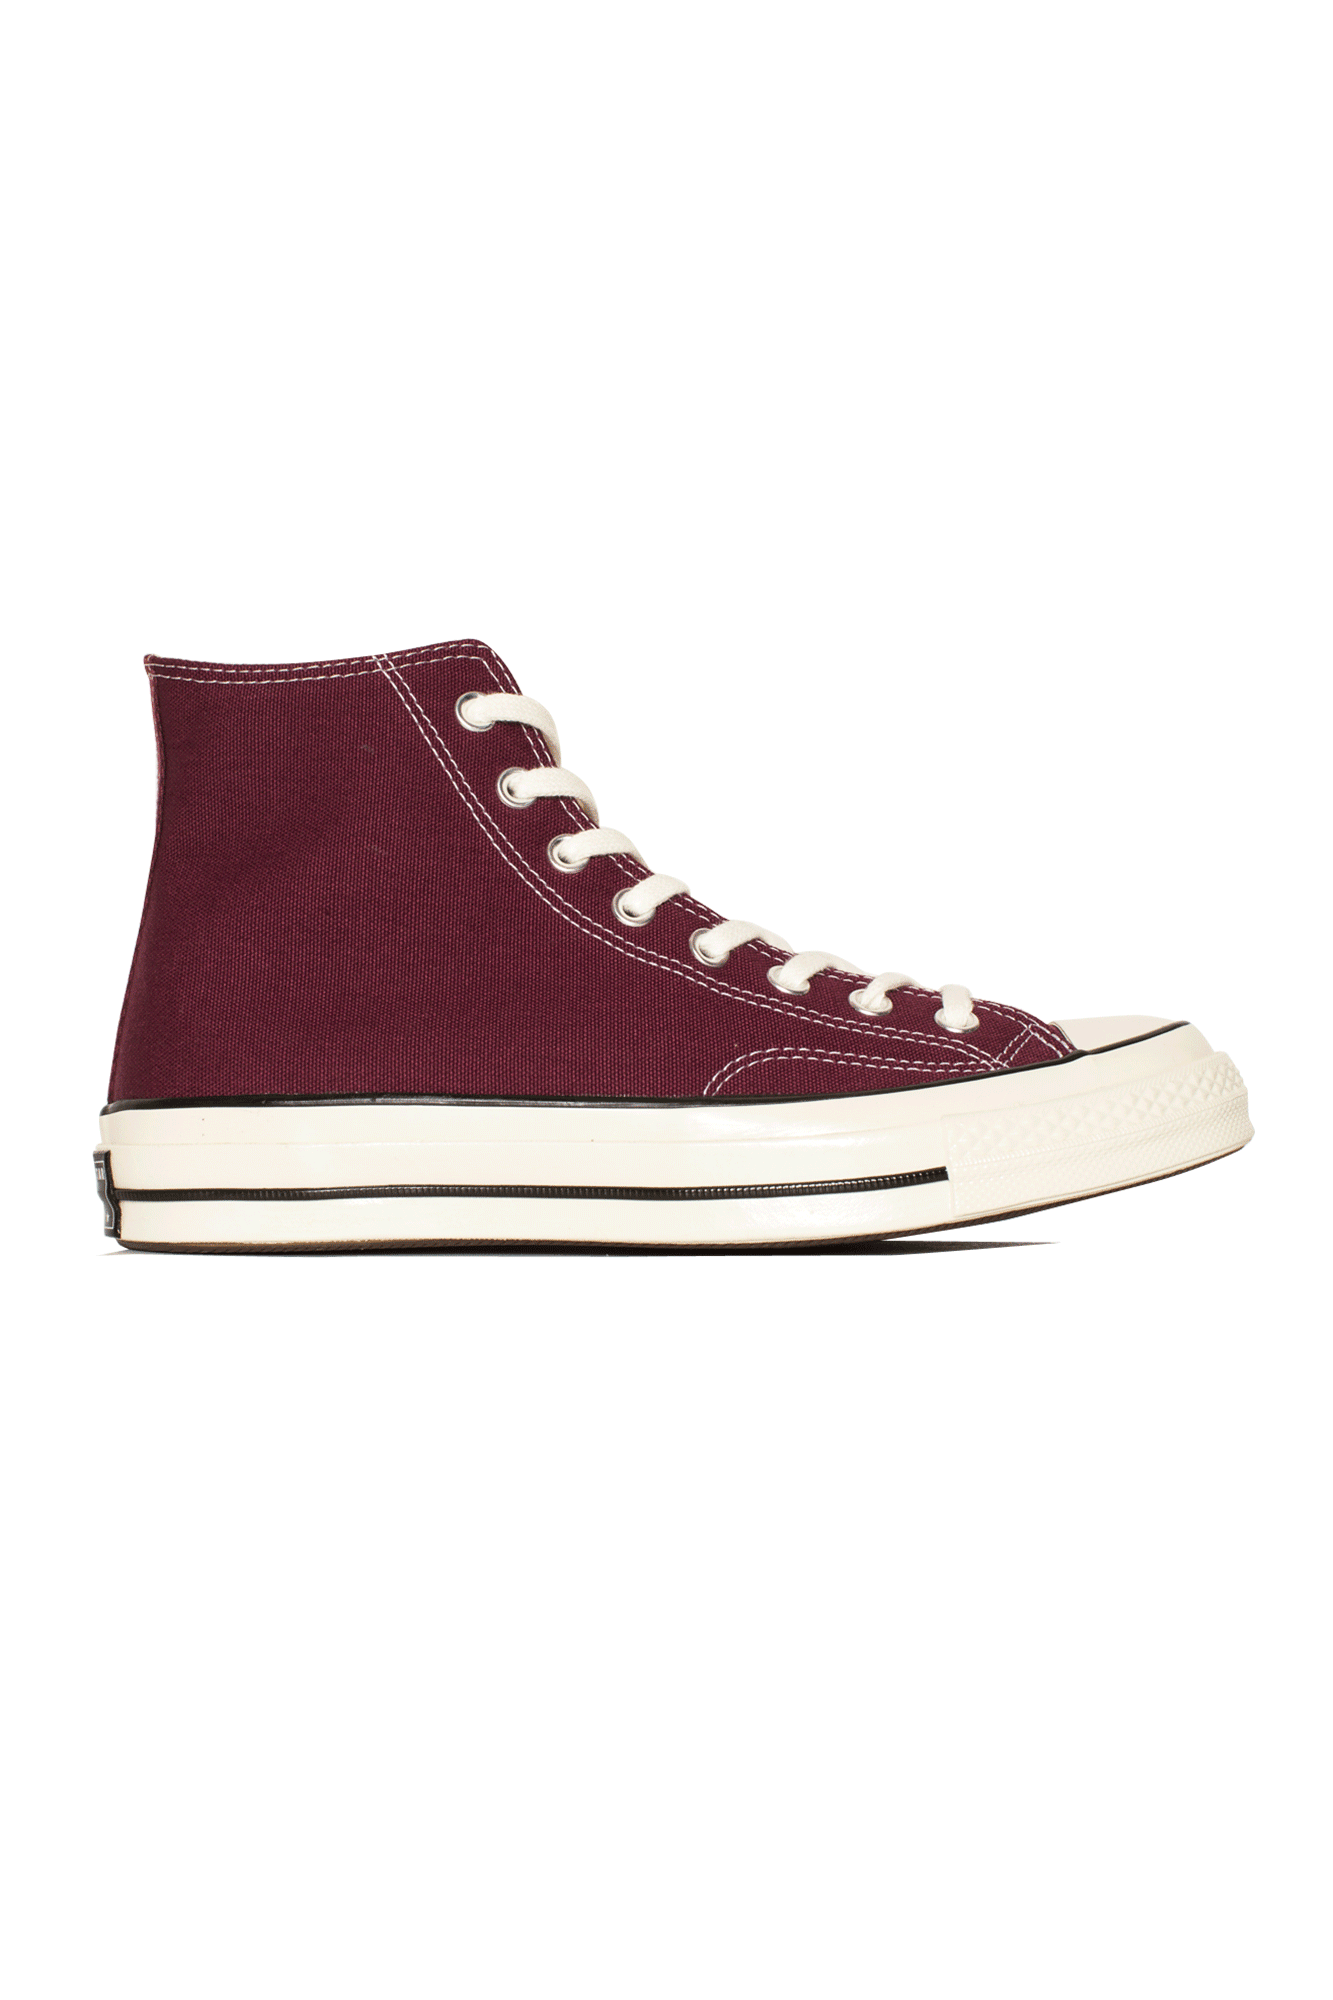 Converse Sneakers Chuck 70 Hi Rosso 162051C#000#C0012#6 - One Block Down